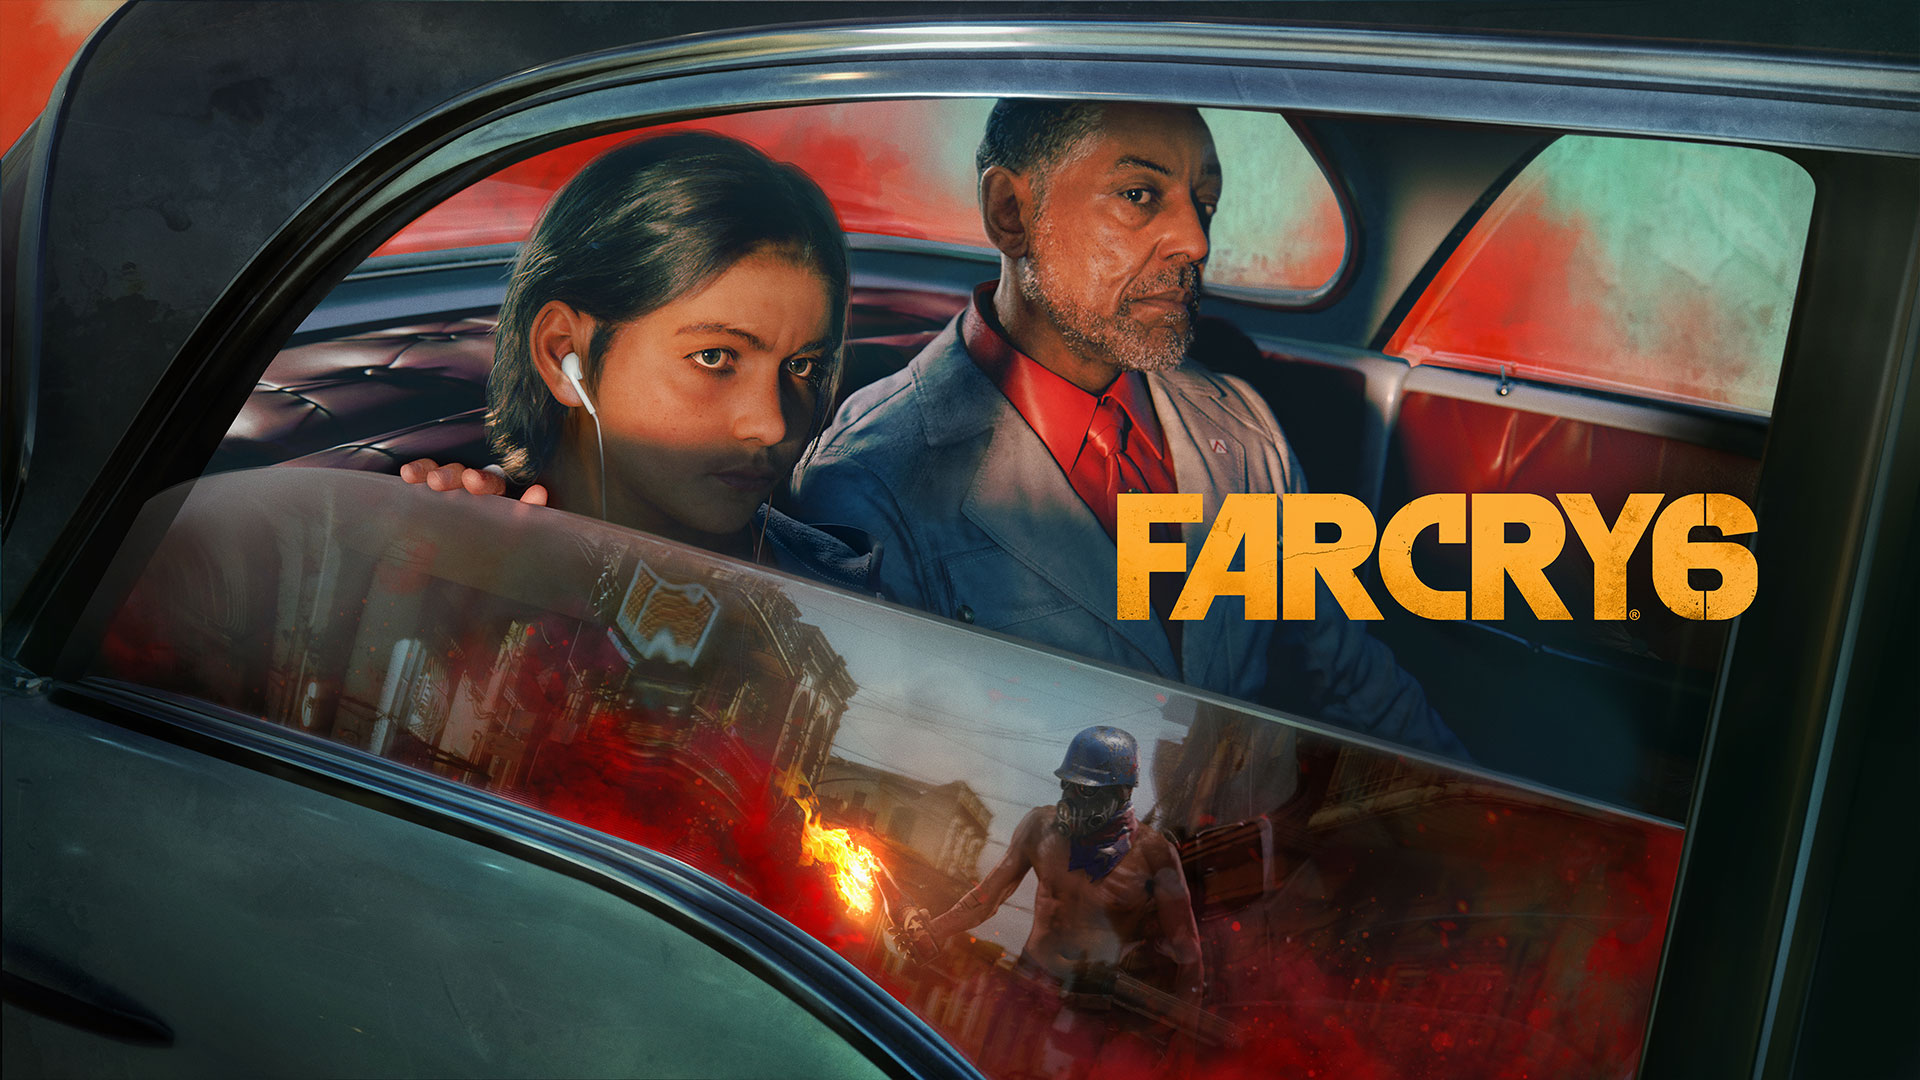 Far Cry 6 will feature many new features